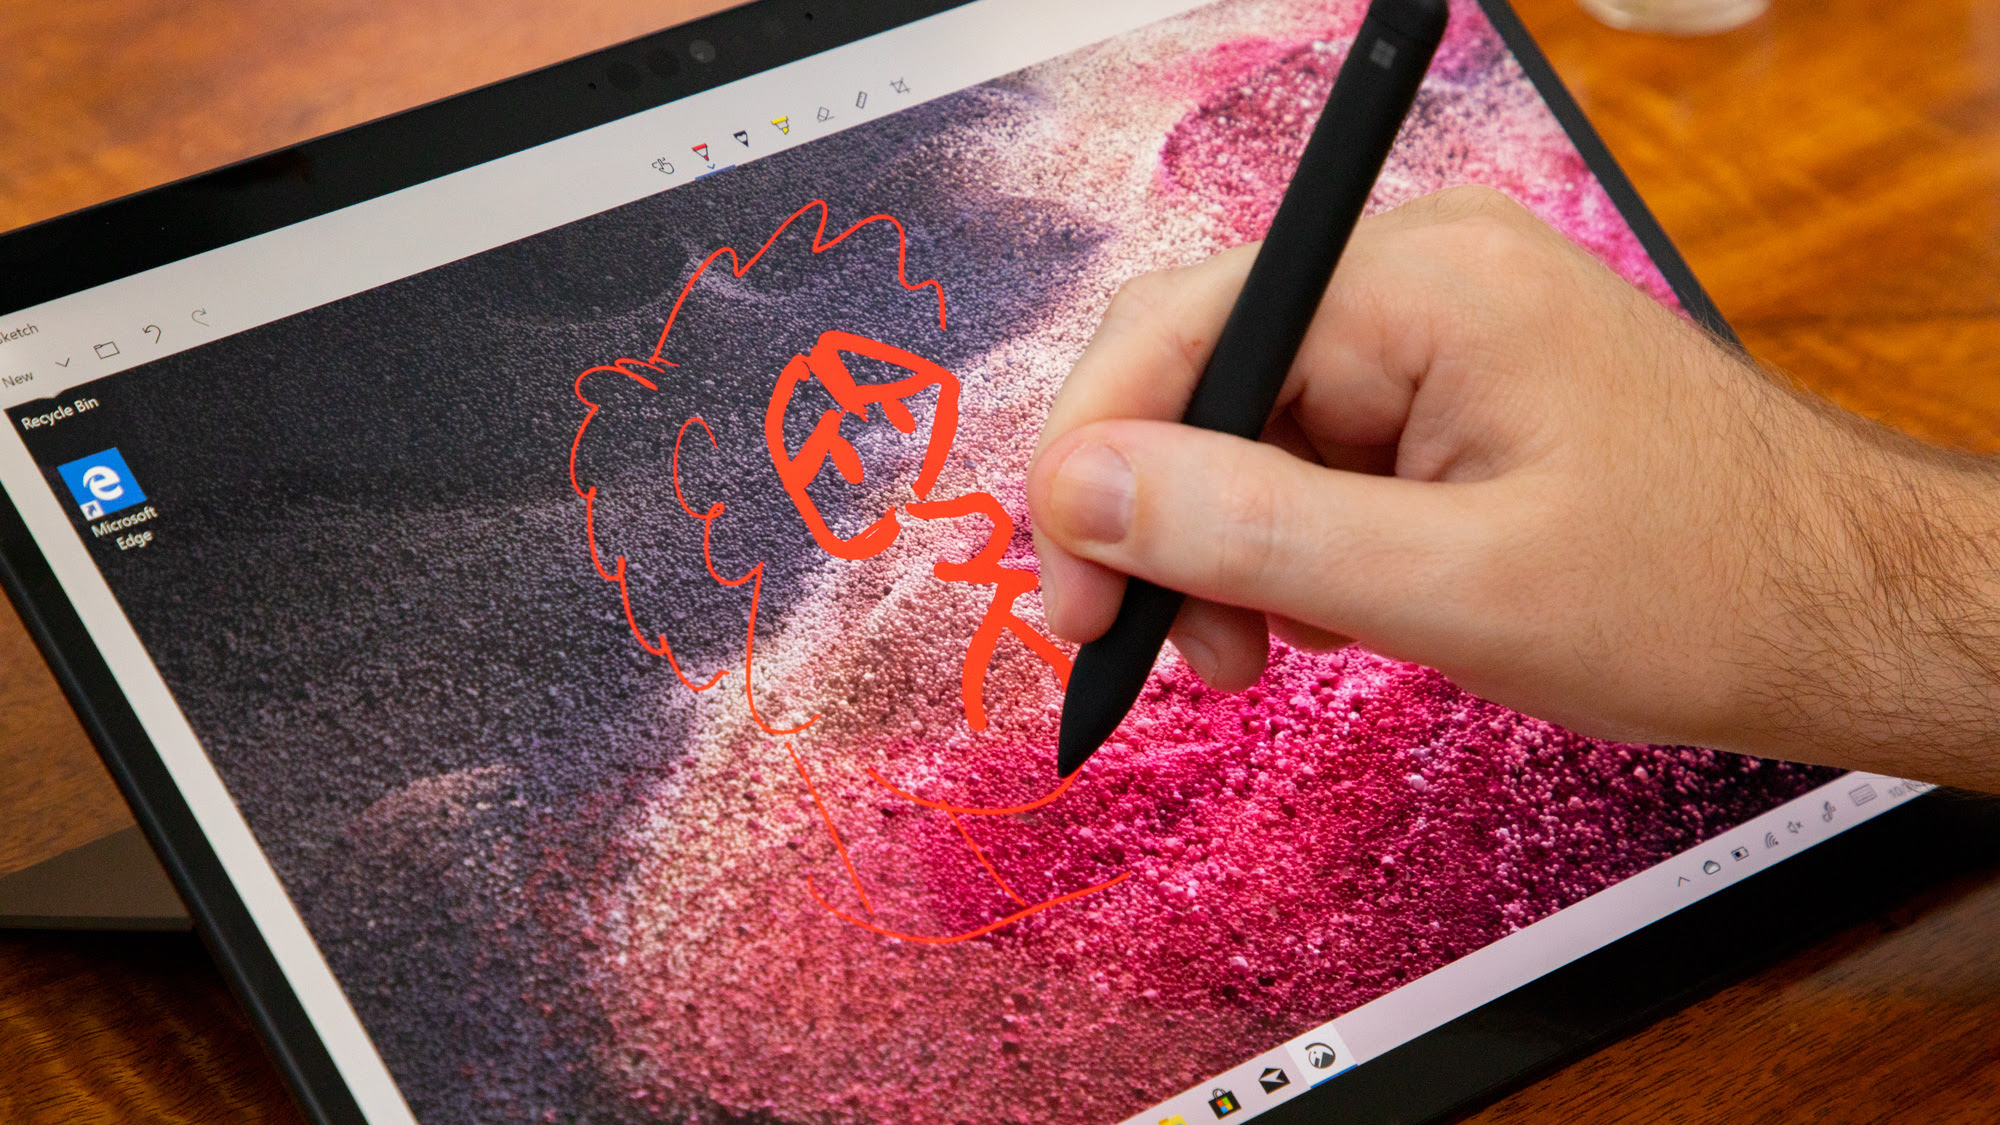 Disappointed with the stale Surface Pro 7? Microsoft's more innovative Surface Pro X is now on sale